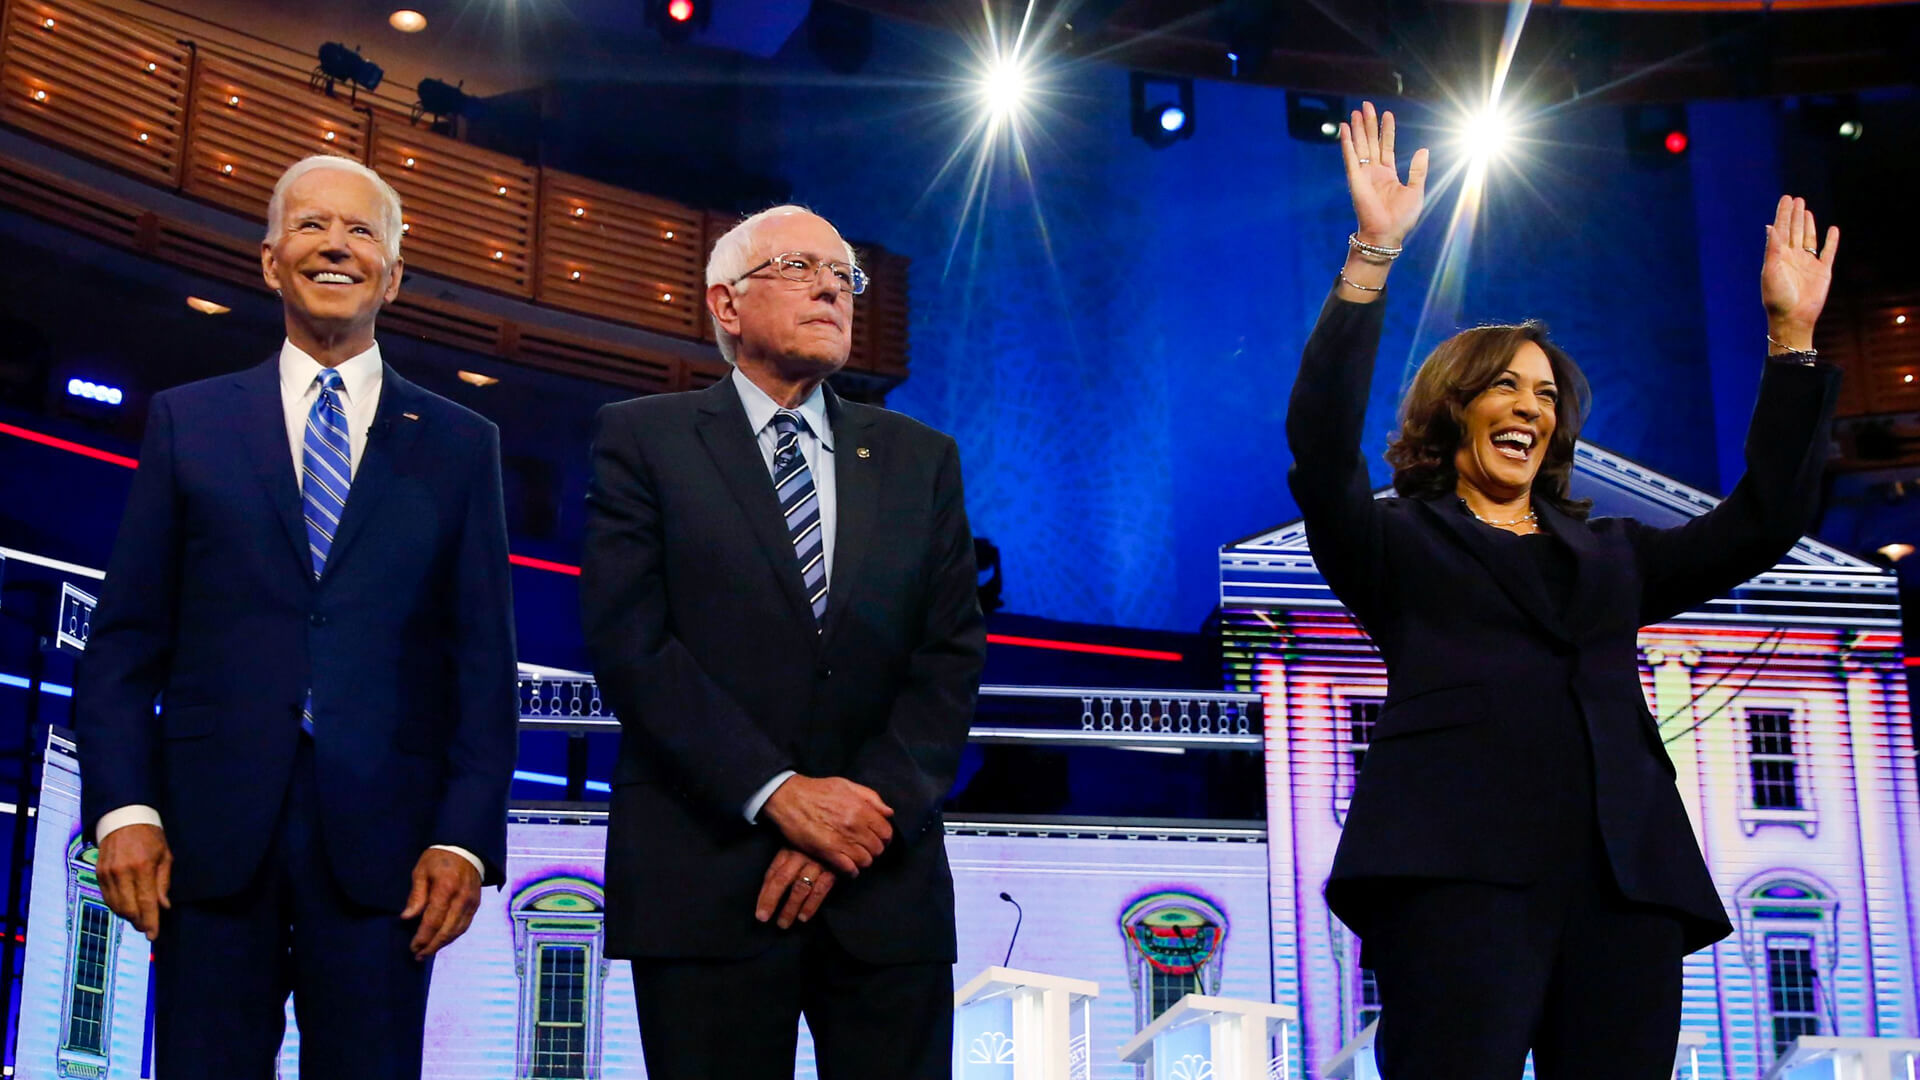 Guide to the 2020 Presidential Candidates: Here's Where They Stand on Money Issues and More